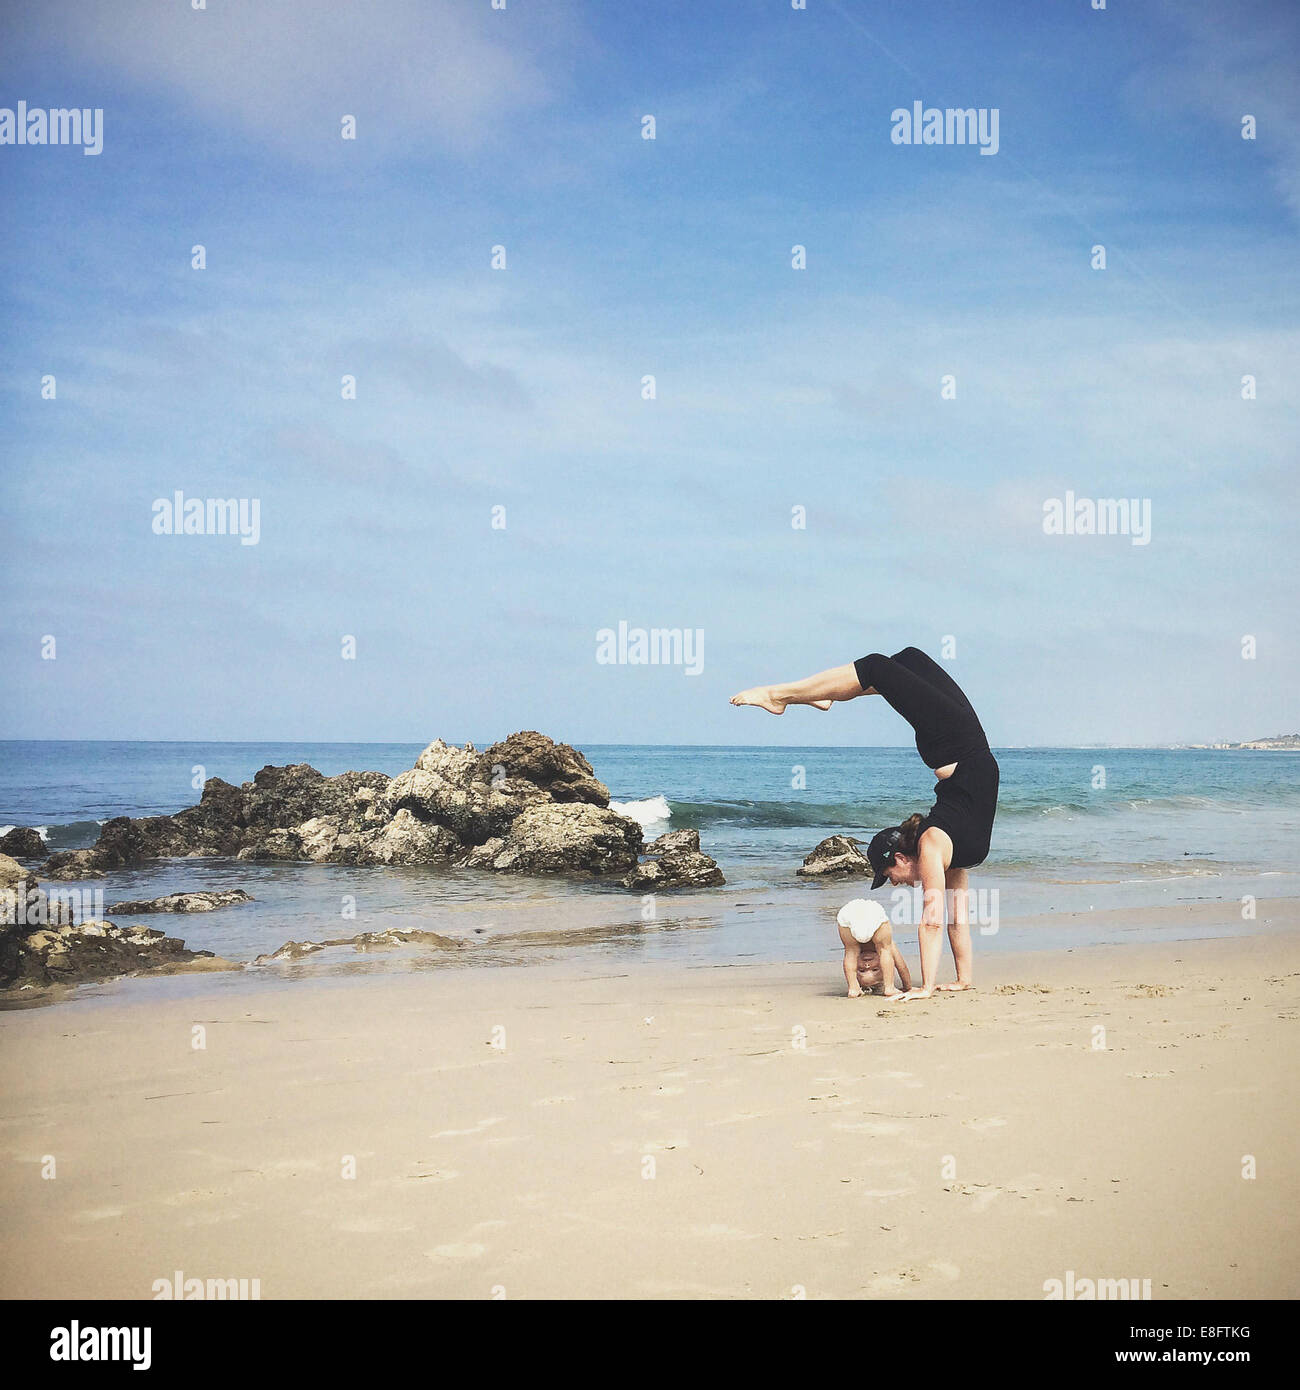 Mother and son doing yoga on beach, California, america, USA - Stock Image